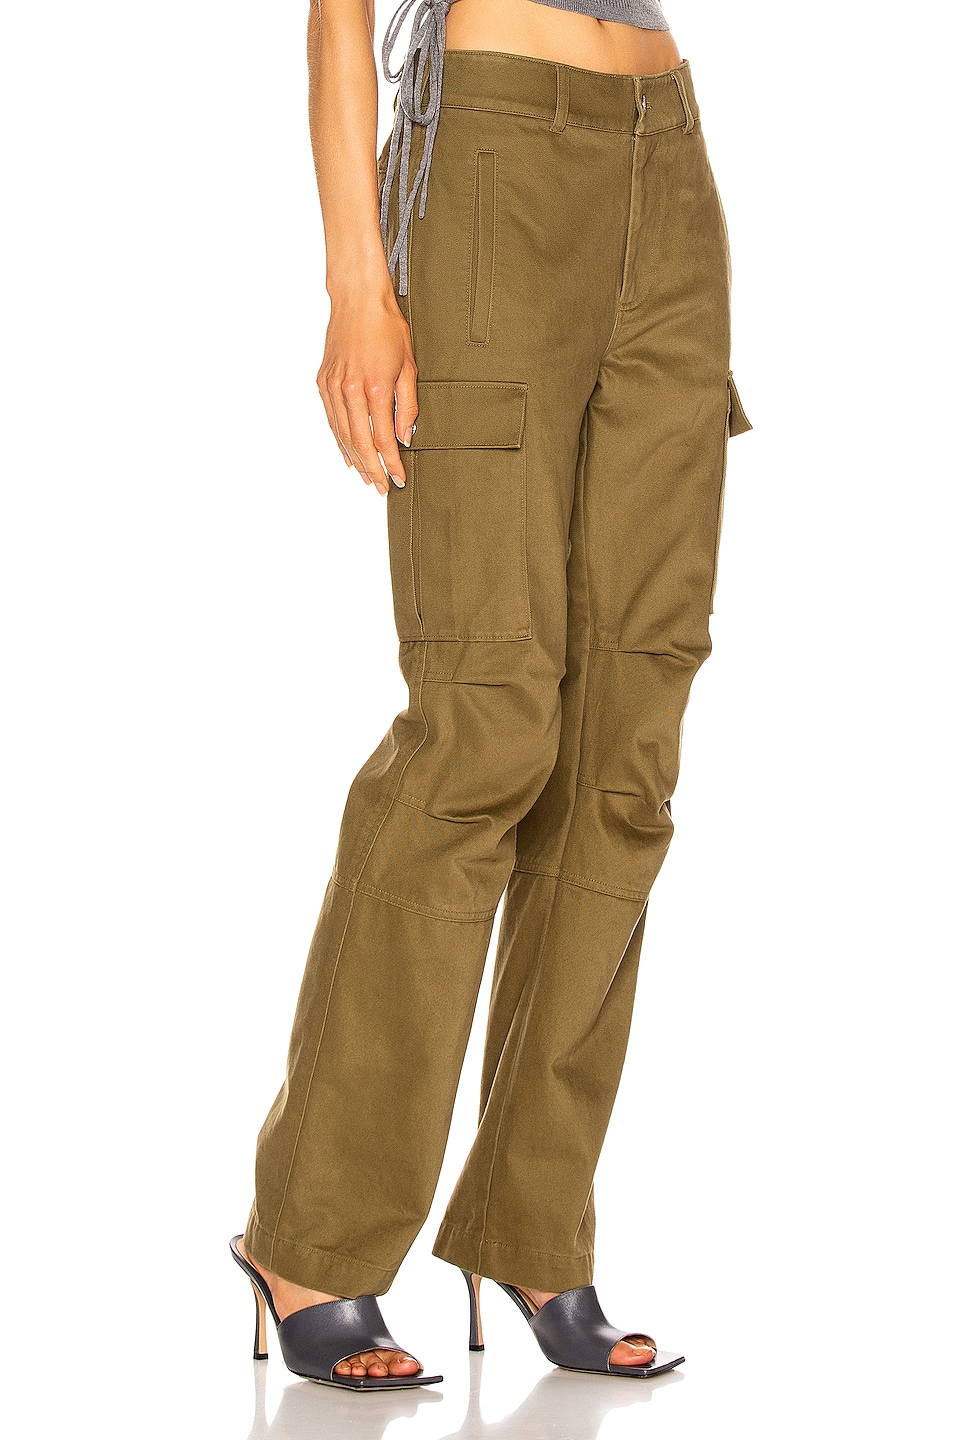 Image 2 of T by Alexander Wang Twill Cargo Pant in Olive